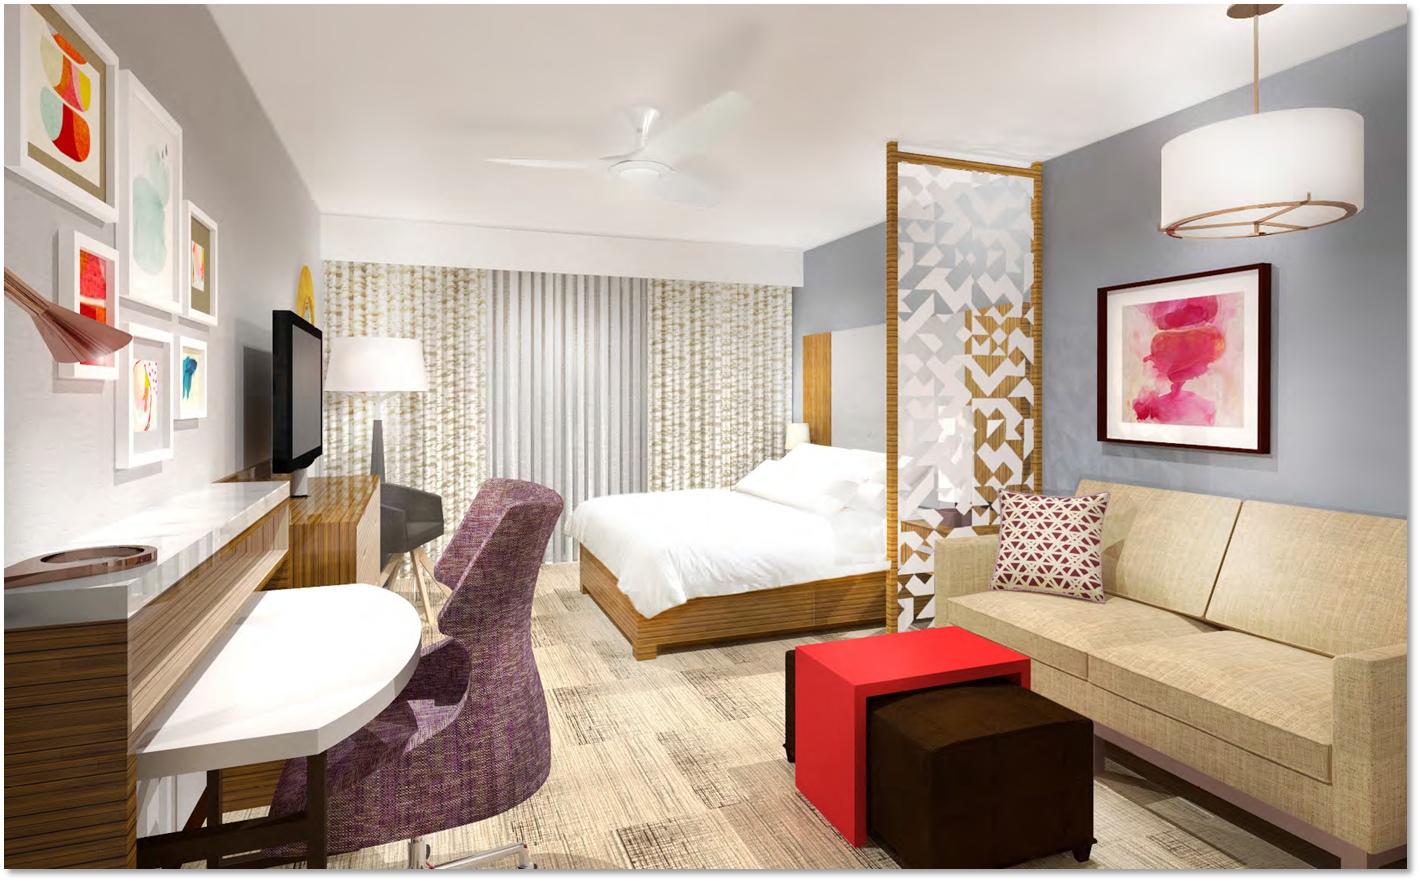 39 Tropicalized 39 Space U S Extended Stay Hotels Make A Push Into Latin America Wlrn